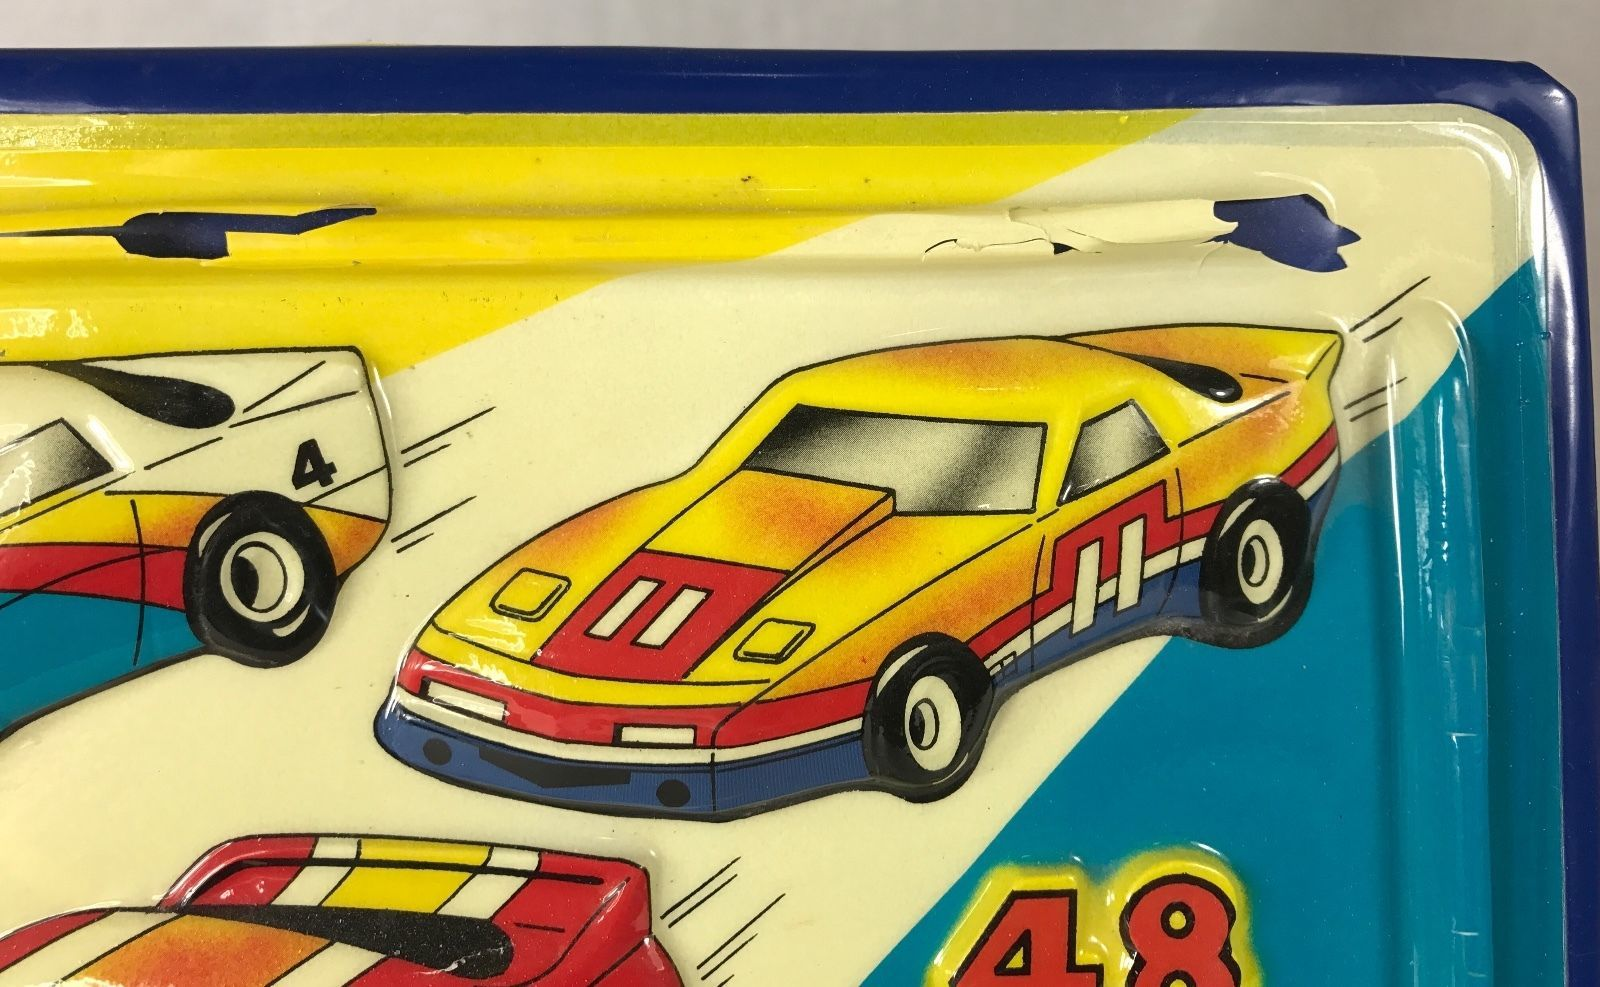 SHELL GAS STATION HOT WHEELS TOY CAR SPECIAL PROMO REMAKE BANNER ART 2/' X 4/'